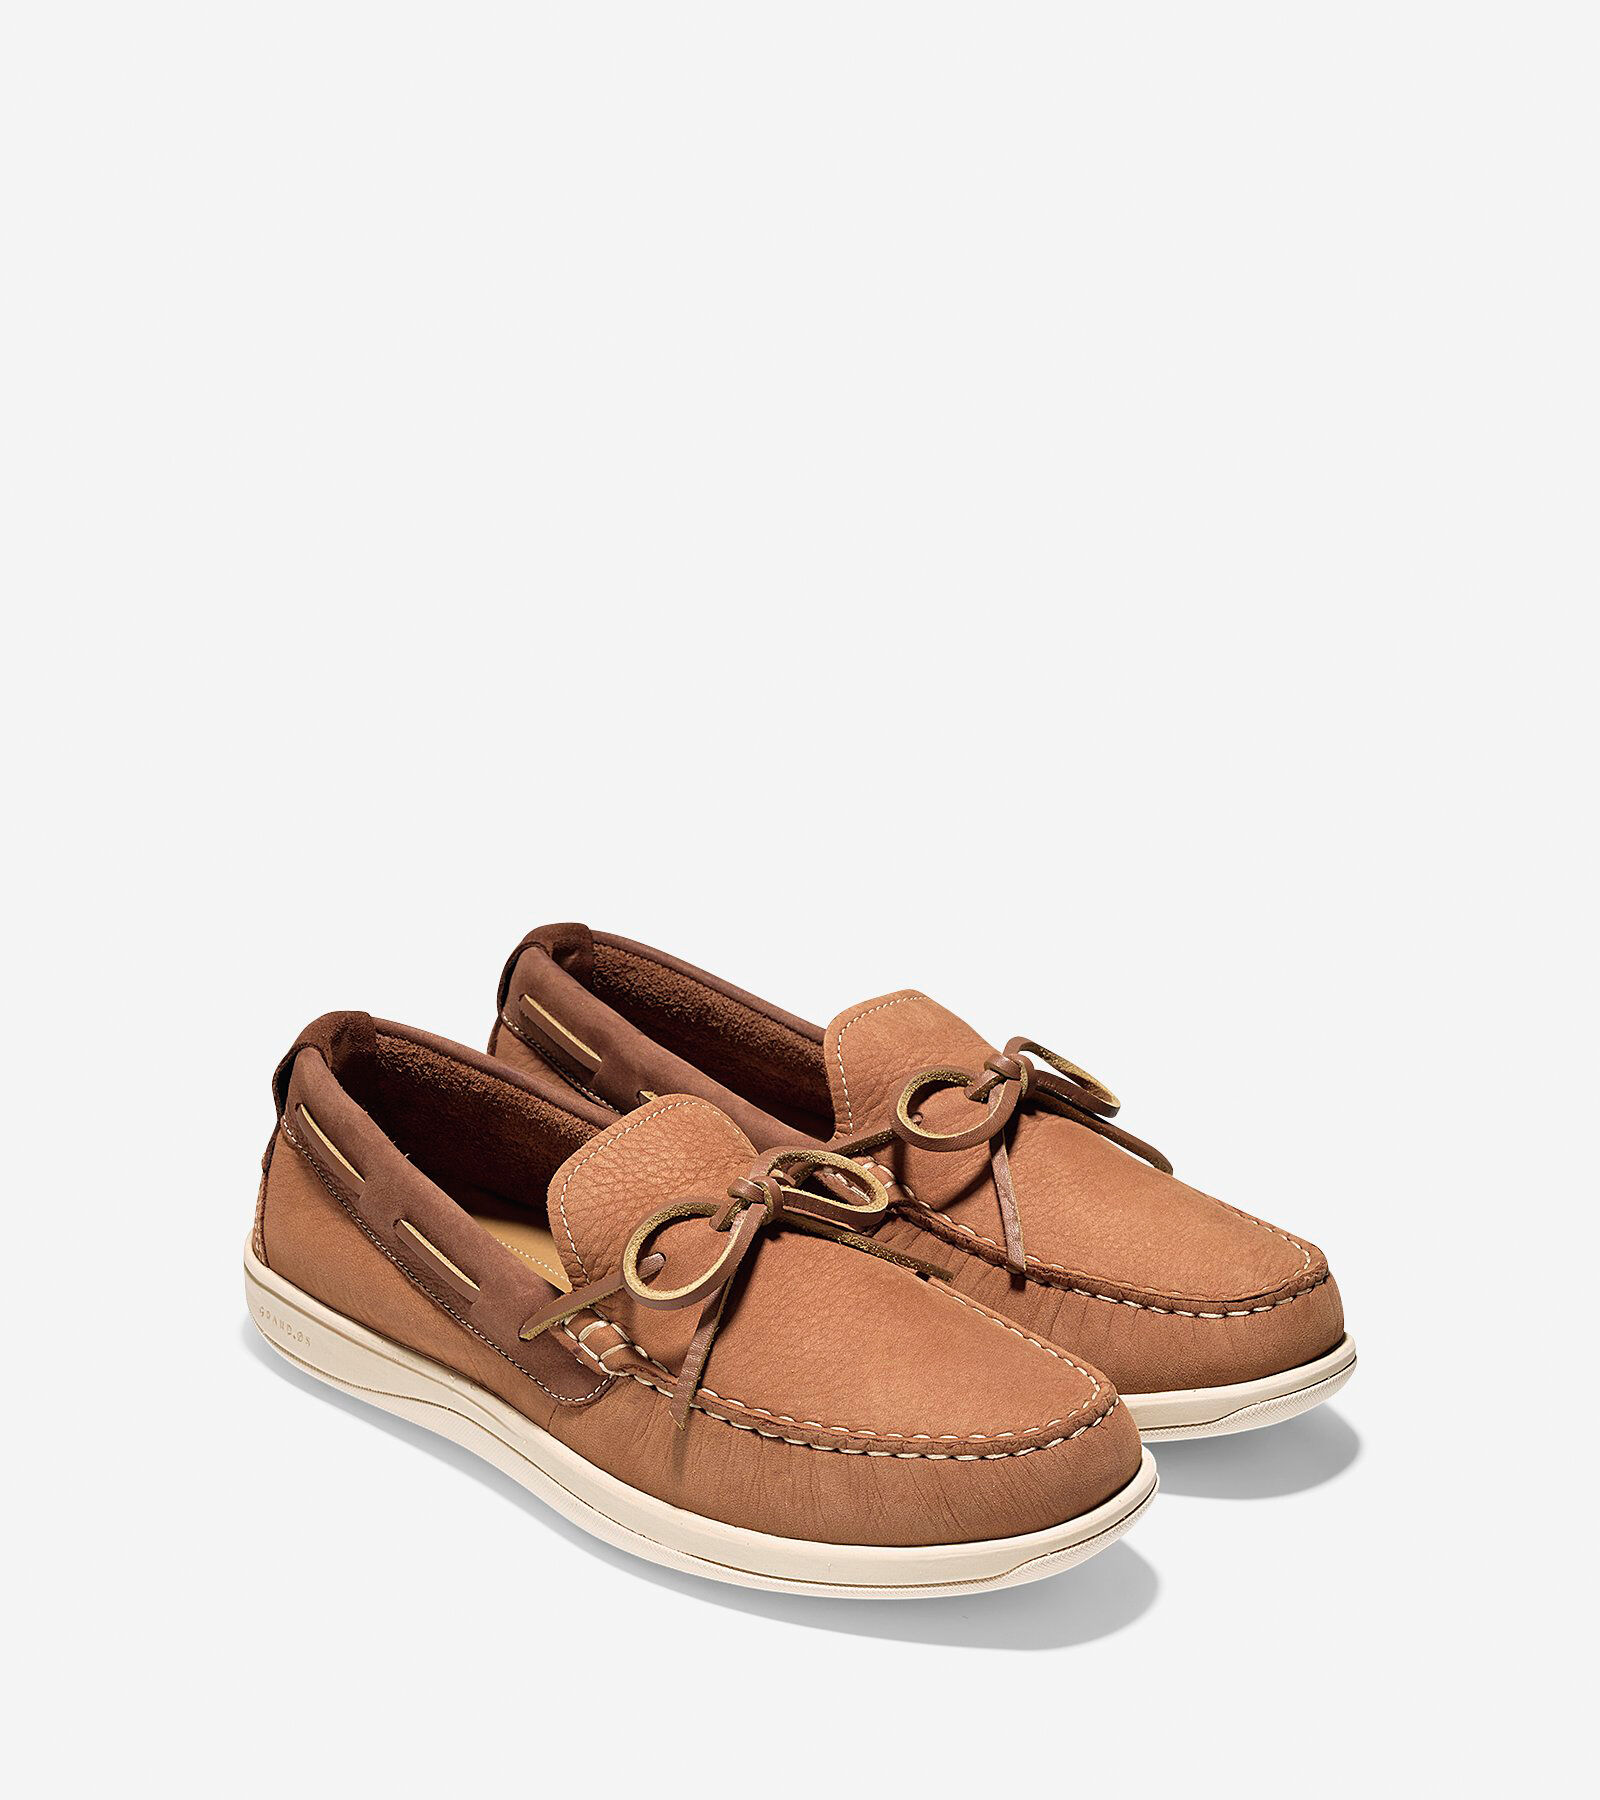 Cole Haan Boothbay Camp Moccasin VptBW